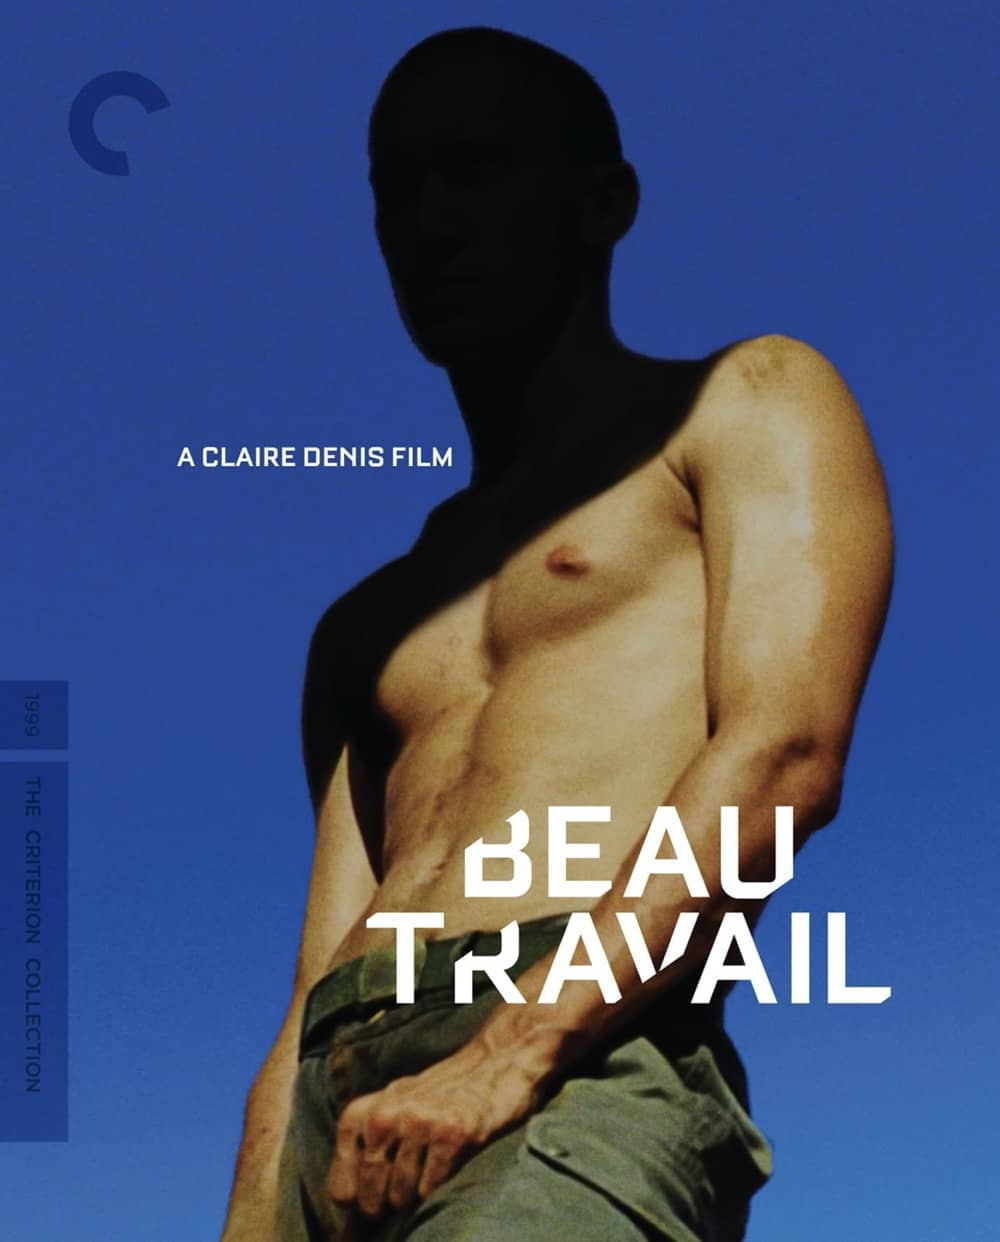 Beau travail criterion collection bluray cover